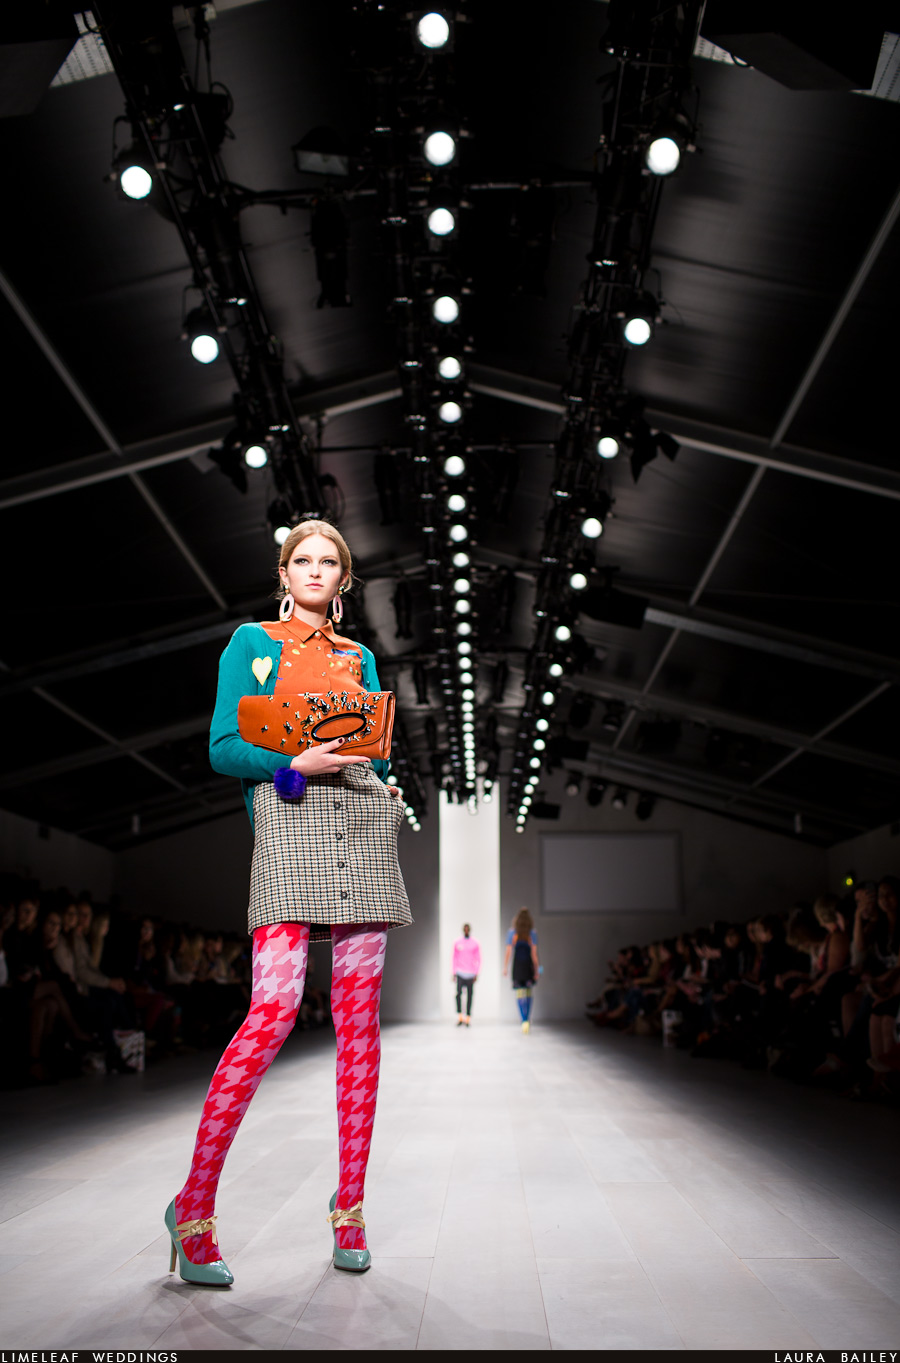 Model wears fashion pieces from Henry Hollands collection at London Fashion week 2012